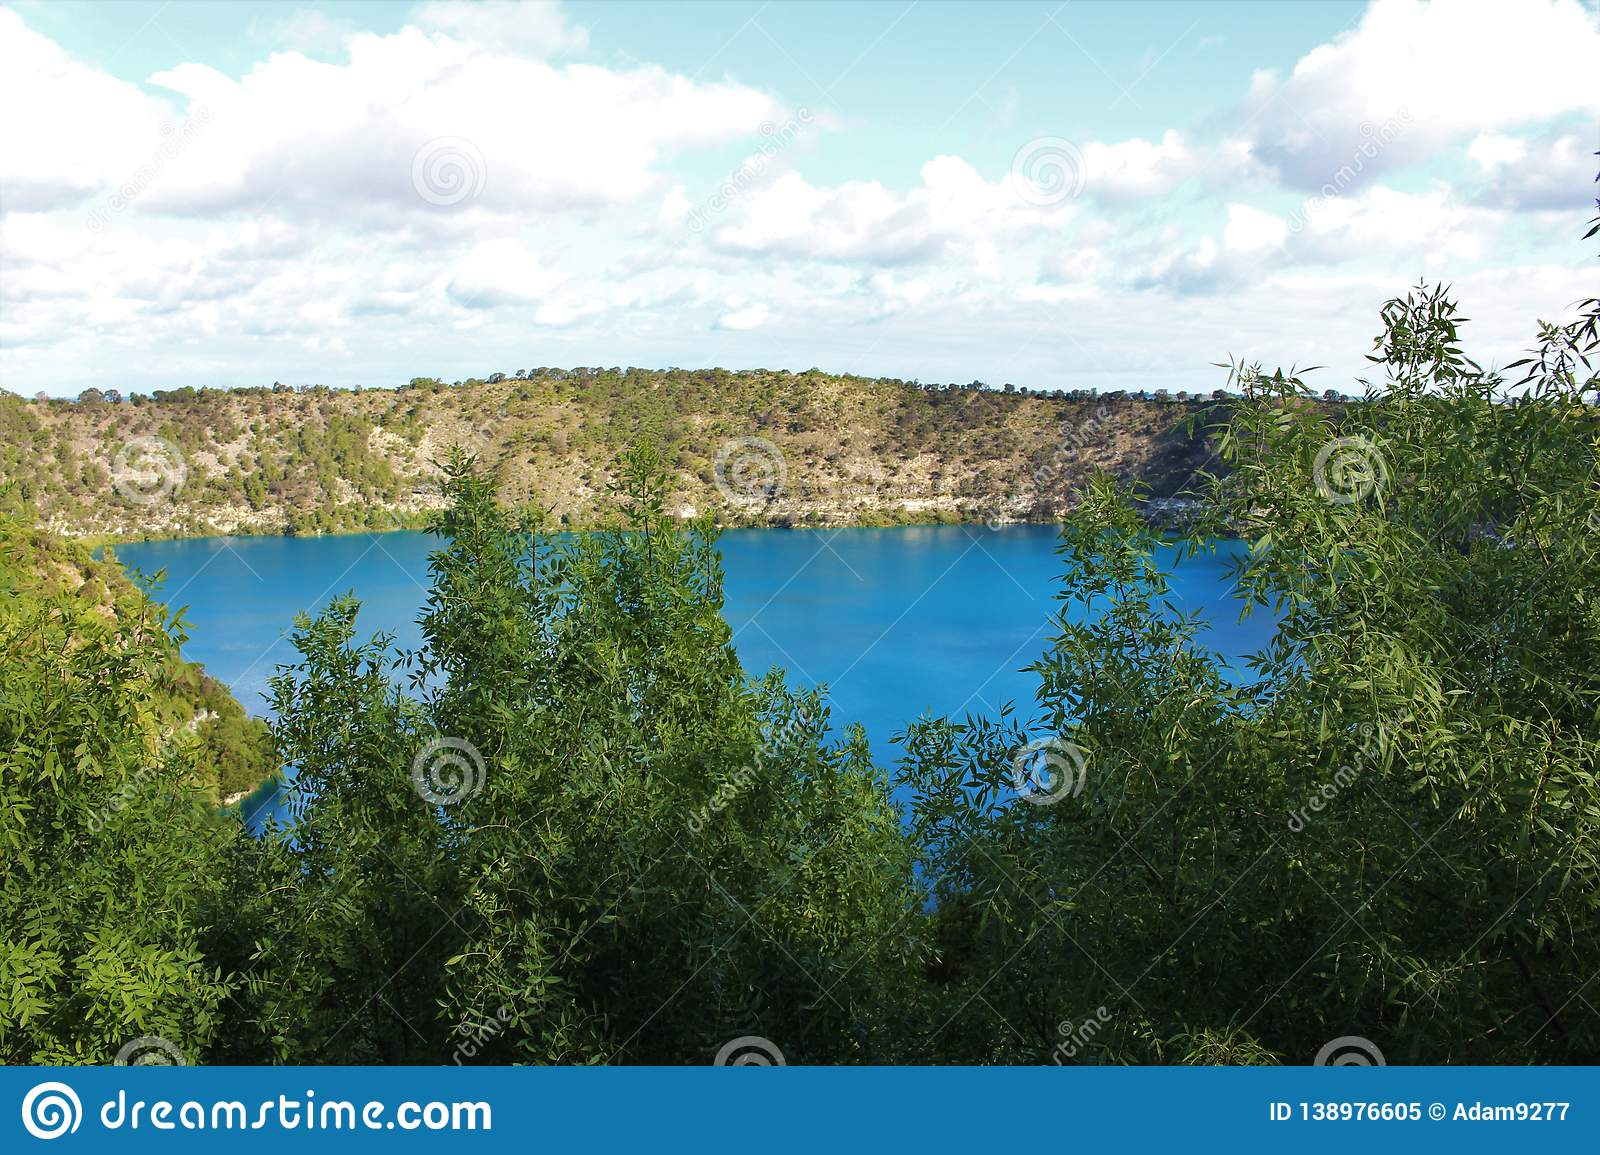 Stunning blue lake at Mount Gambier, Australia. Beautiful natural blue lake in a crater at Mount Gambier, Australia. Lake surrounded by cliffs with trees and royalty free stock photo